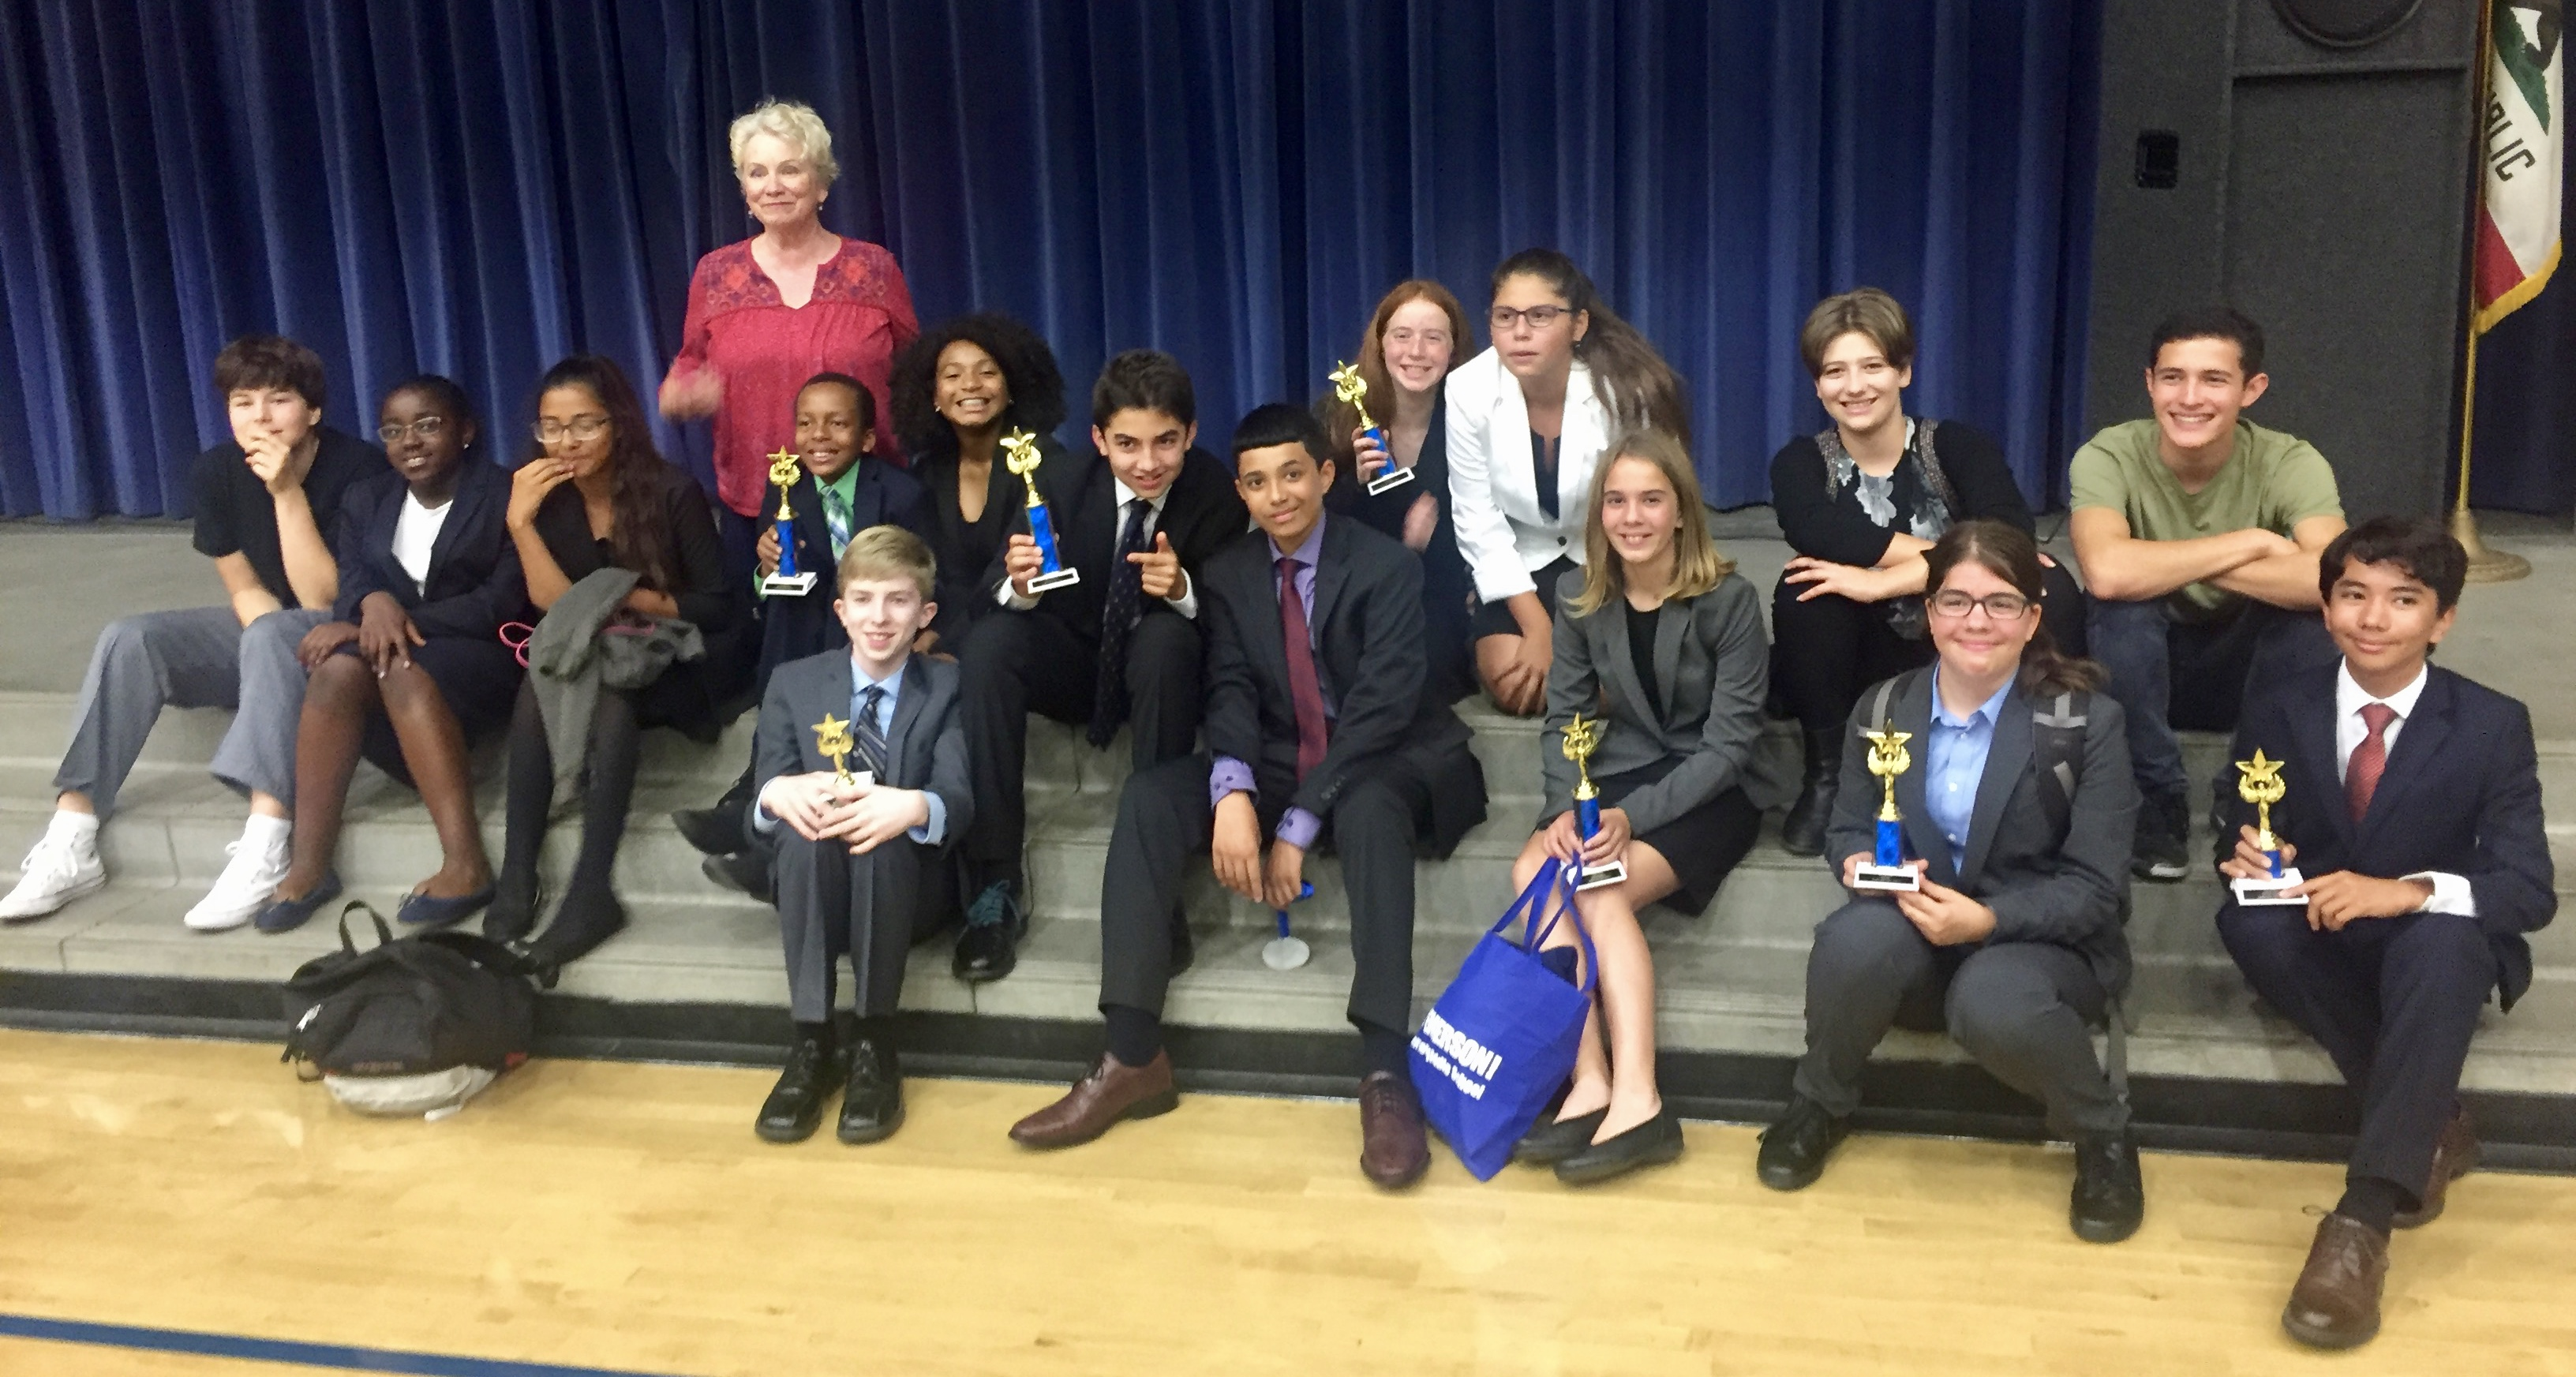 After T-1 awards at Jefferson MS